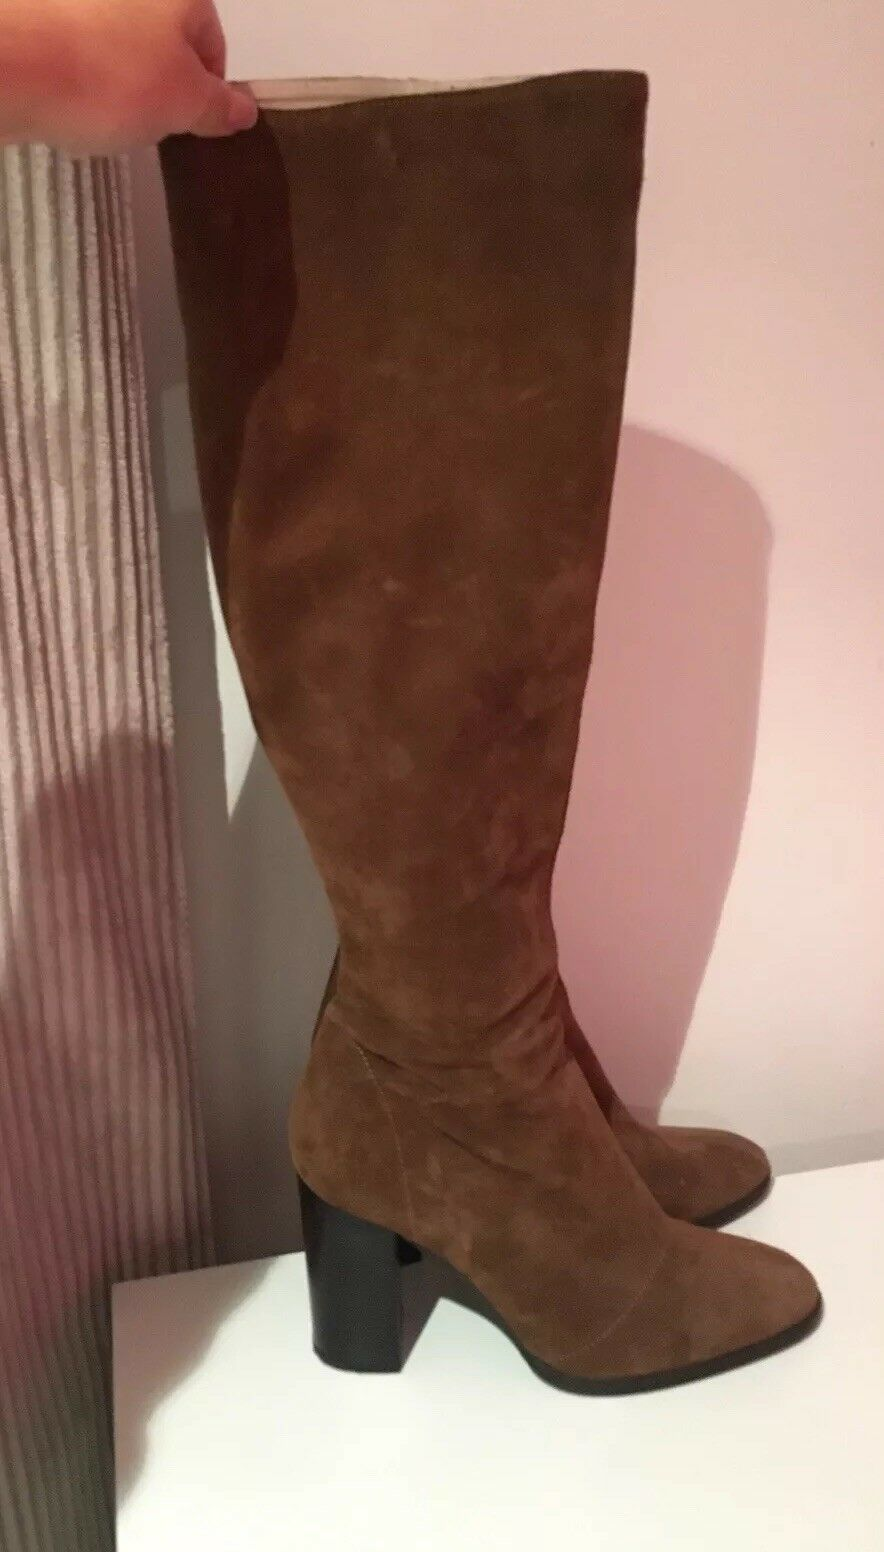 Zara Suede Suede Suede High Heeled Knee High Boots - Size 7 - Only Worn Once fdd43c